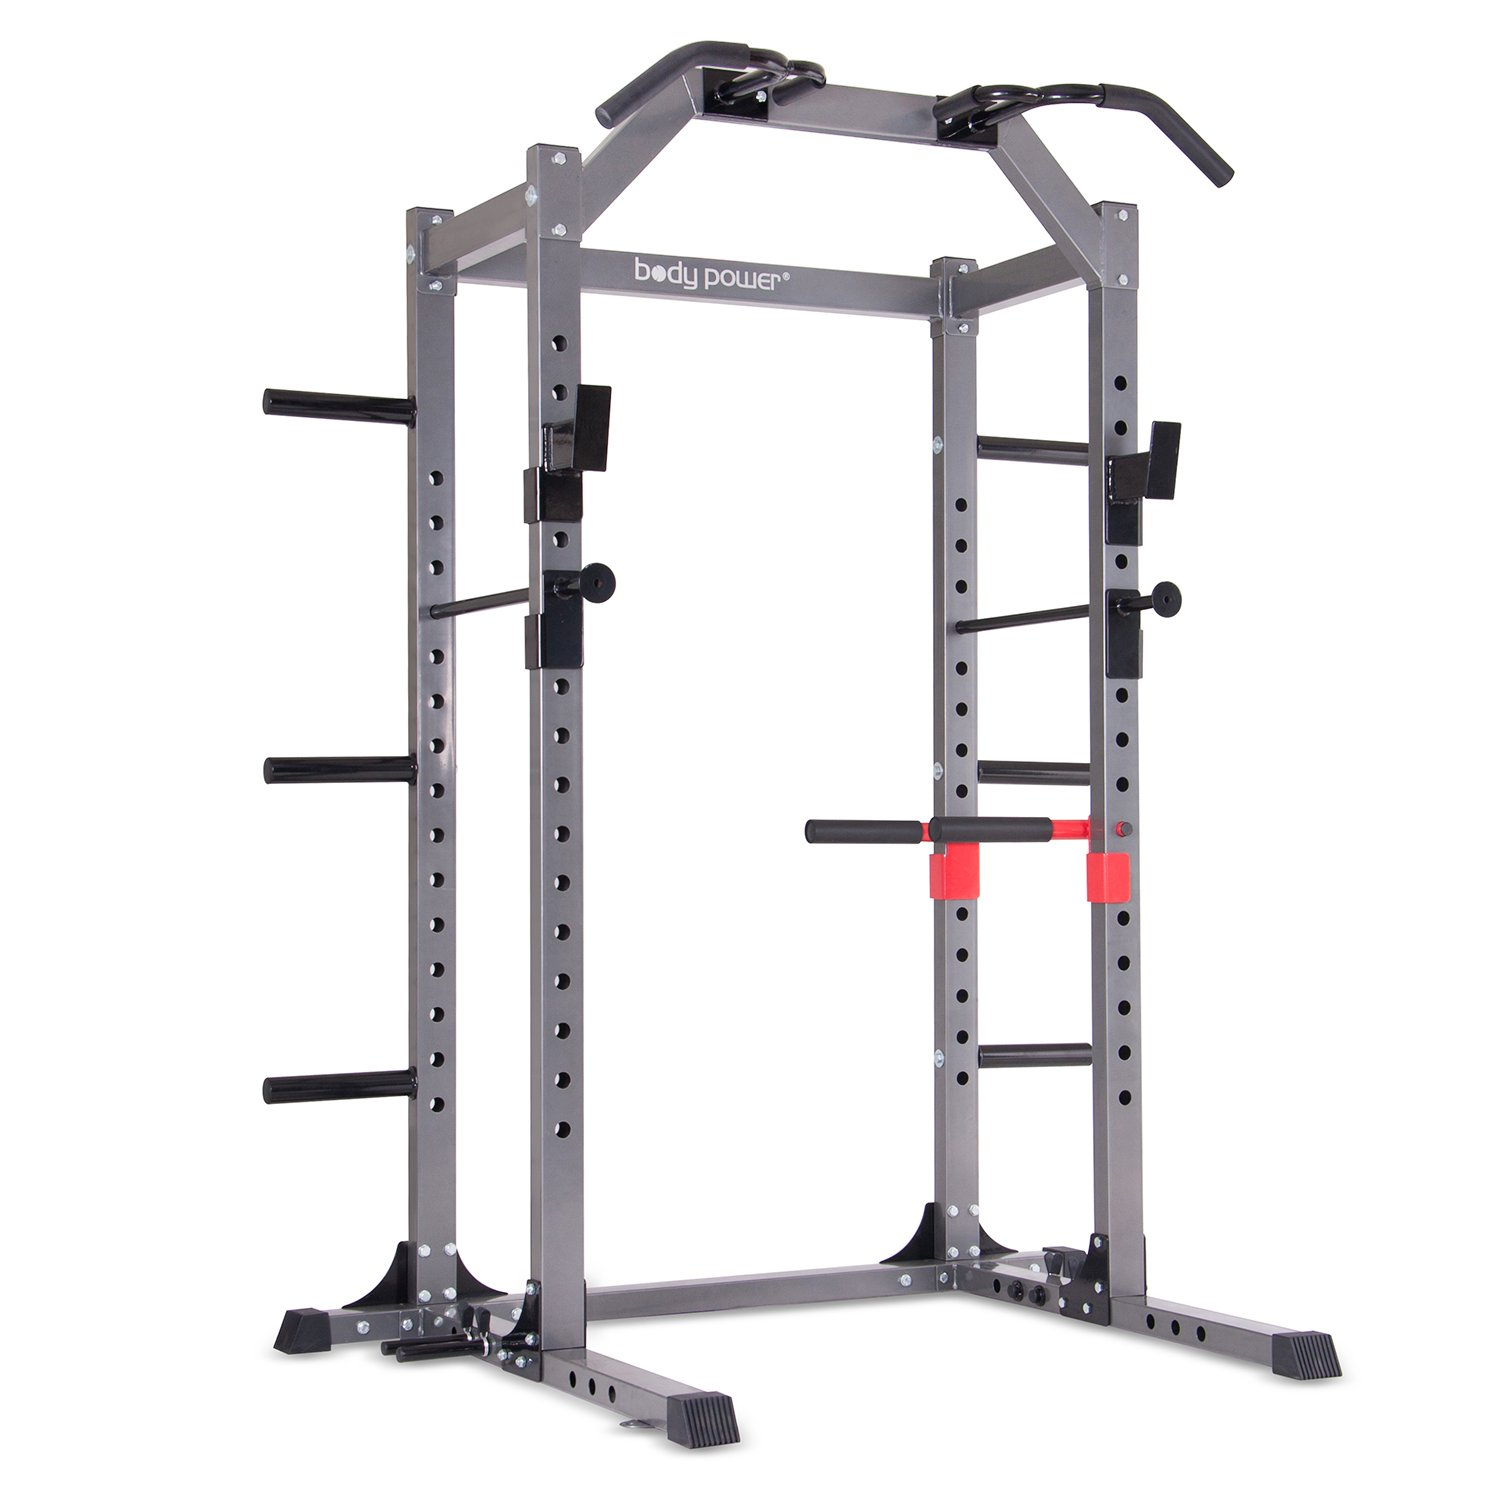 Amazon.com : Body Power Deluxe Rack Cage System Enhanced with ...